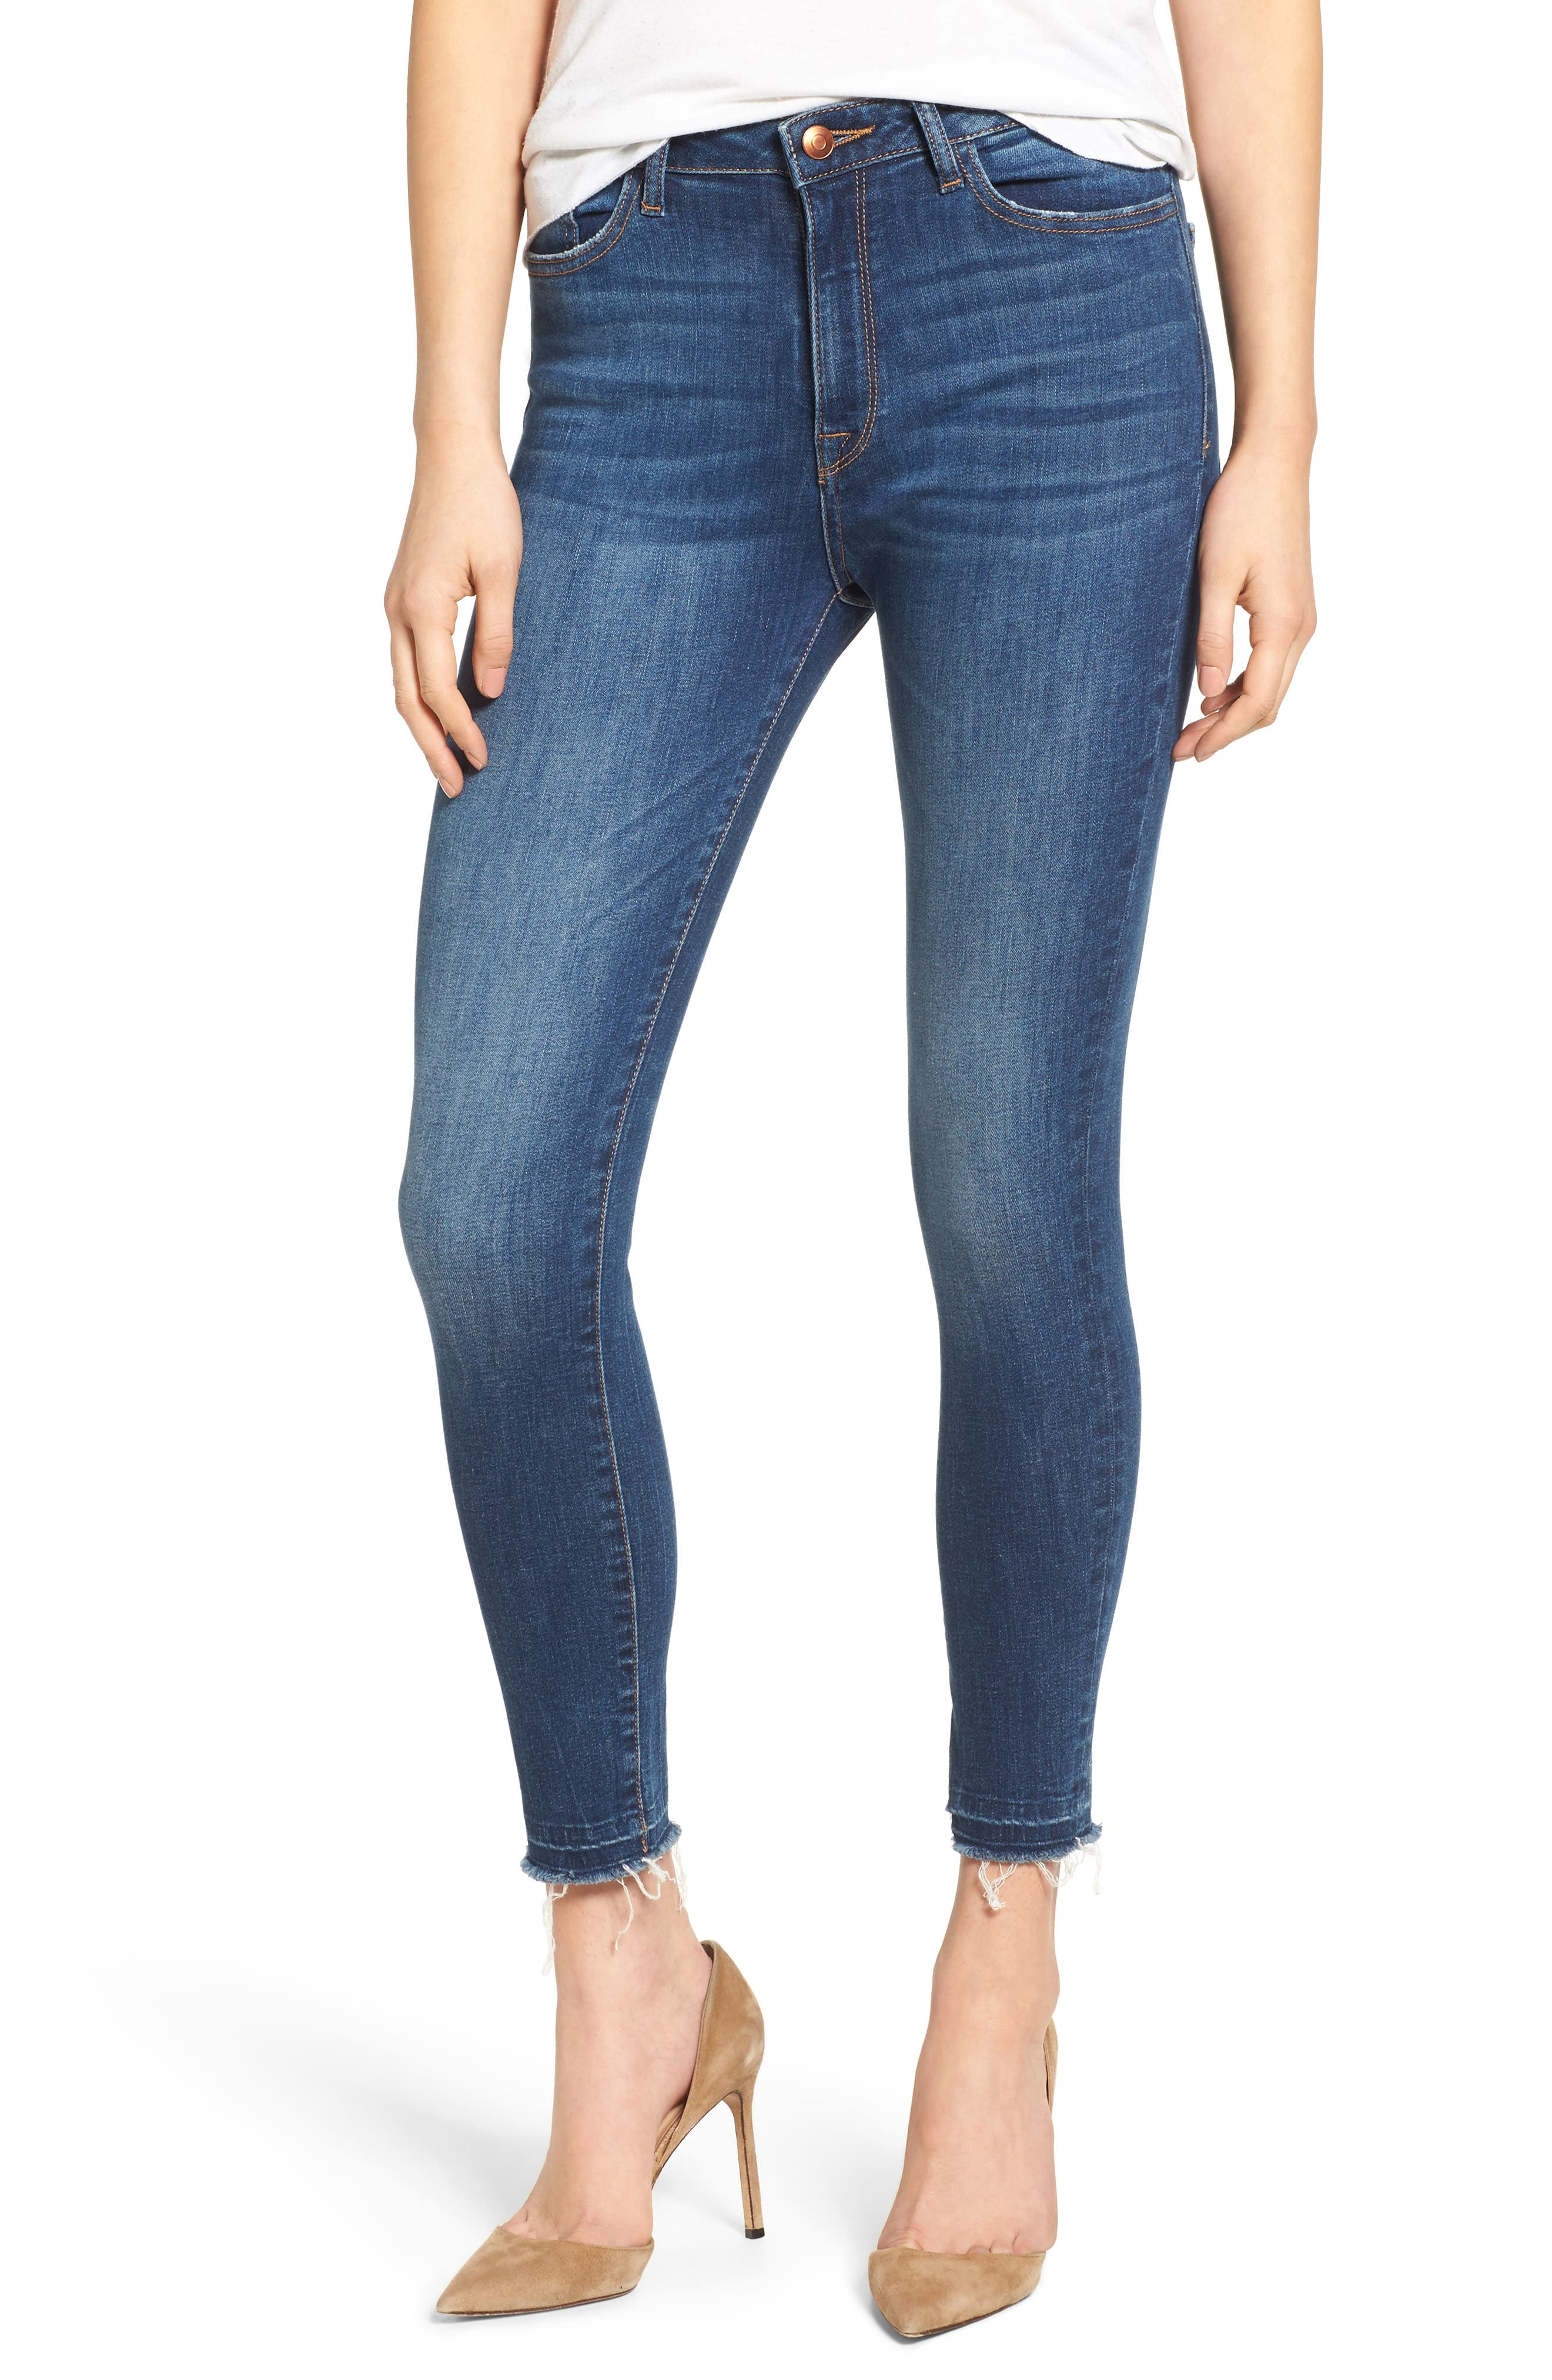 DL1961 Chrissy Trimtone High Rise Ankle Skinny Jeans (Incognito)